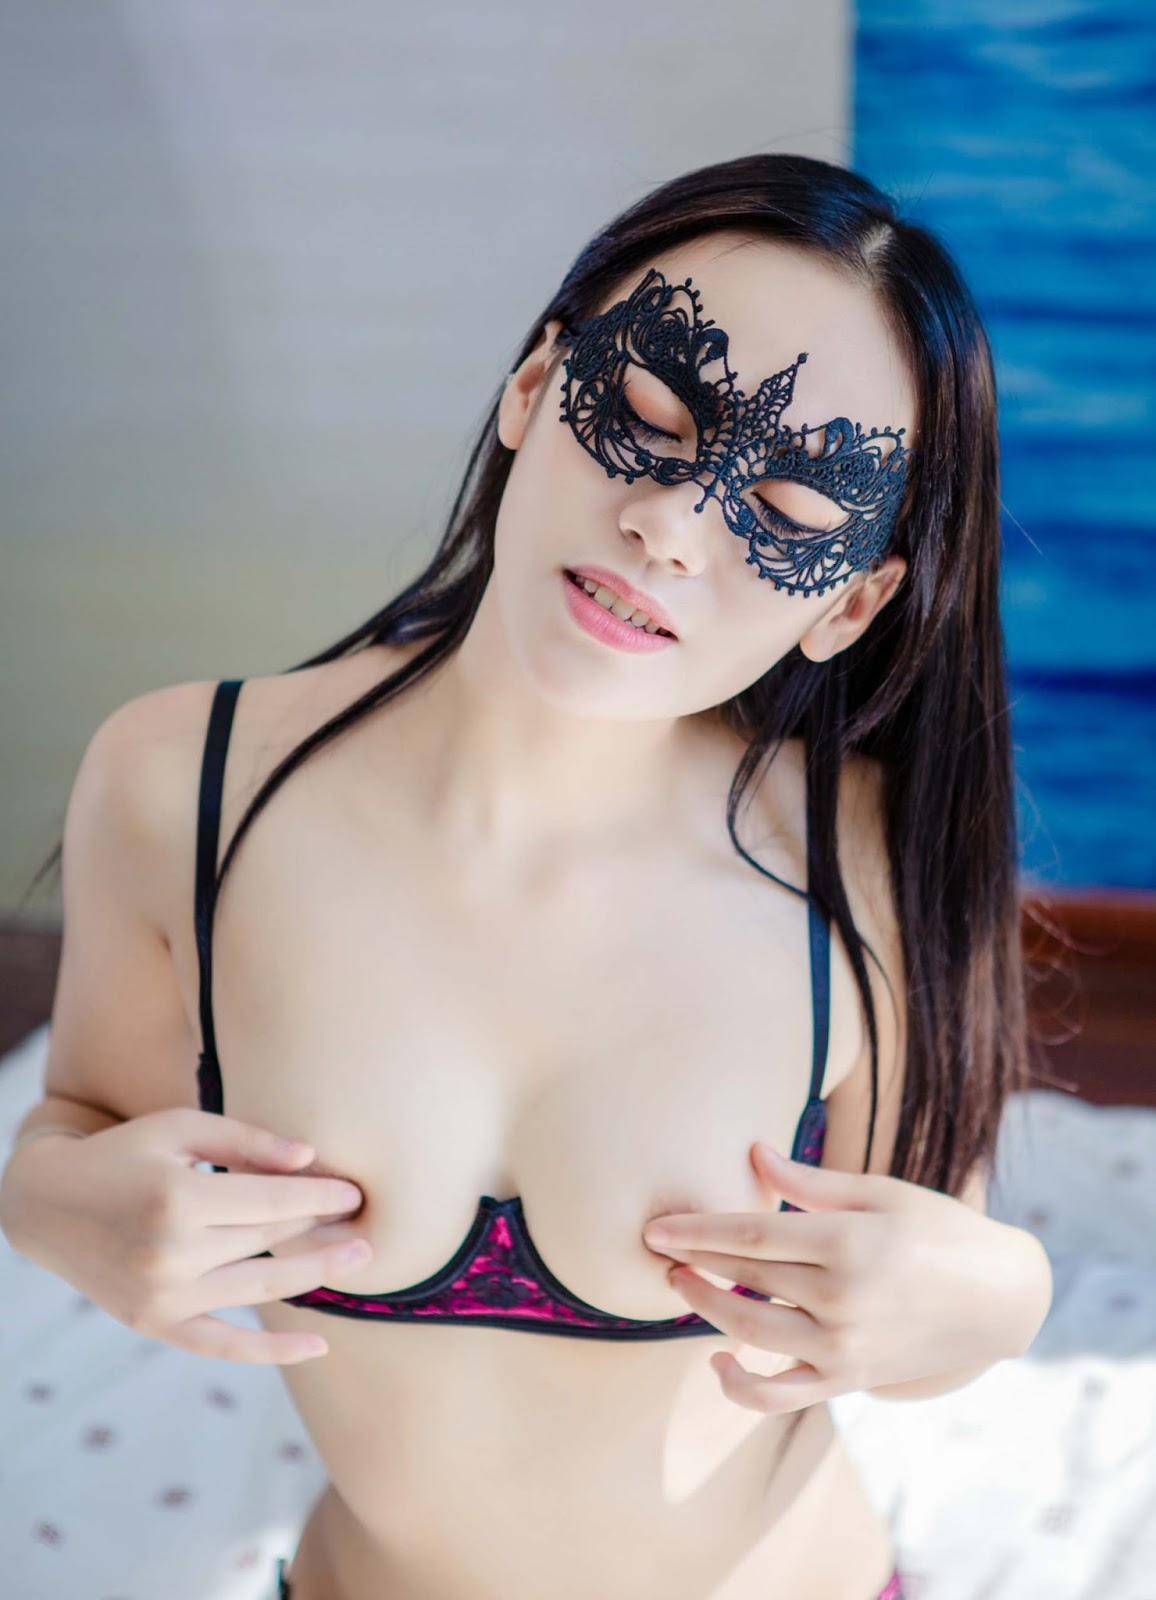 Hot Naked Thick Chinese Model Xiaohua 校花 Pussy Girl Maid Sex Slave Cosplay